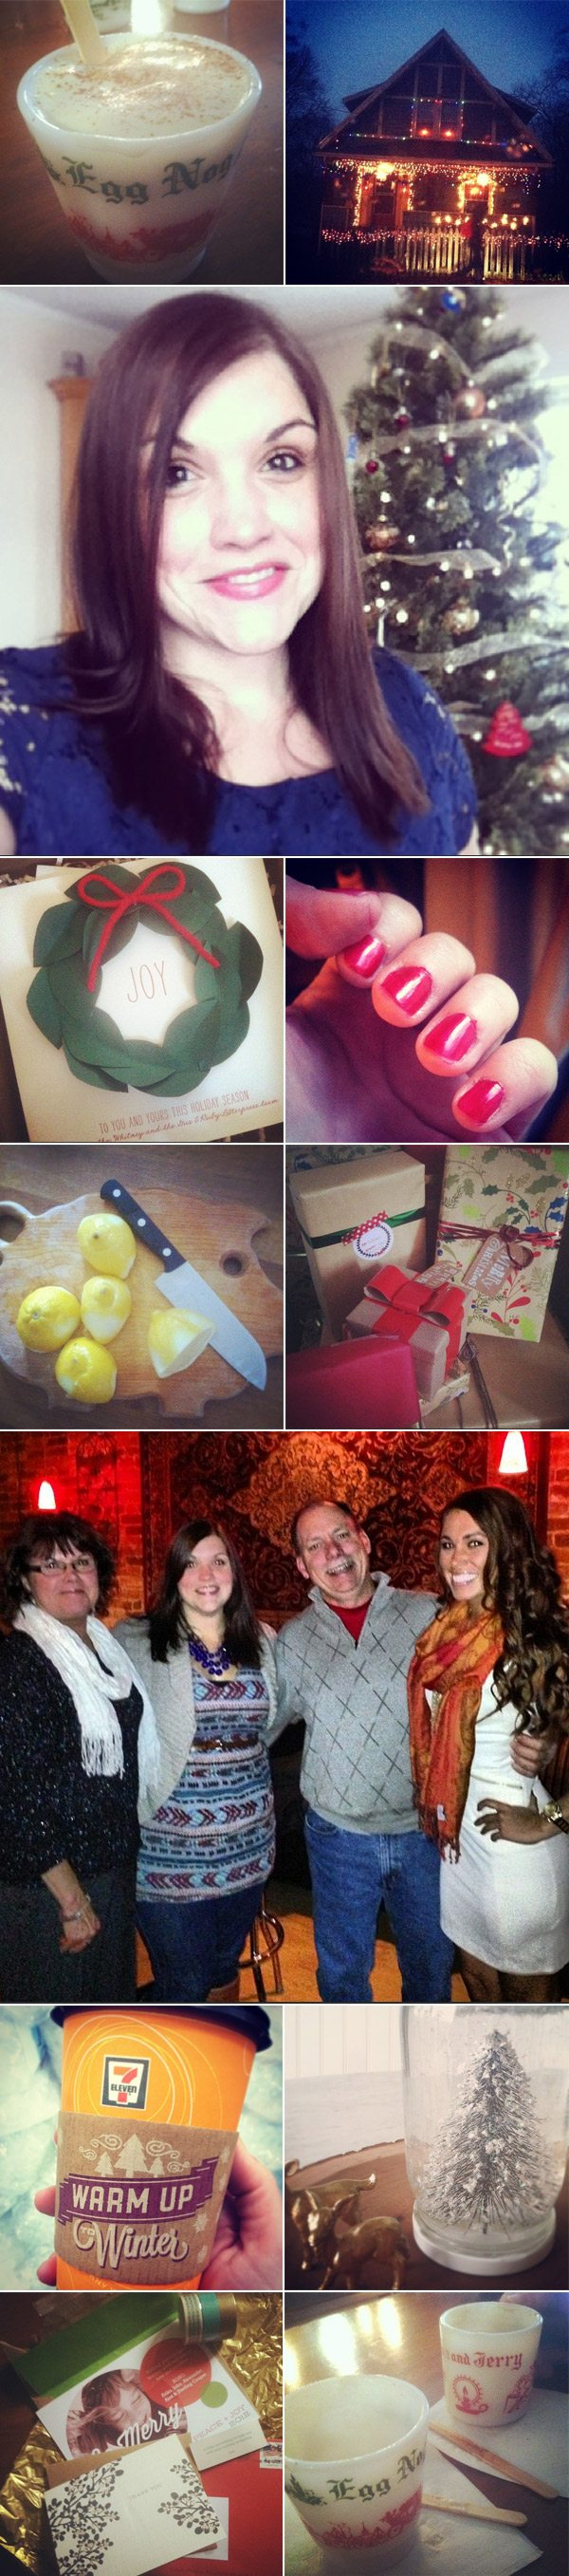 Christmas snippets | The Sweetest Occasion